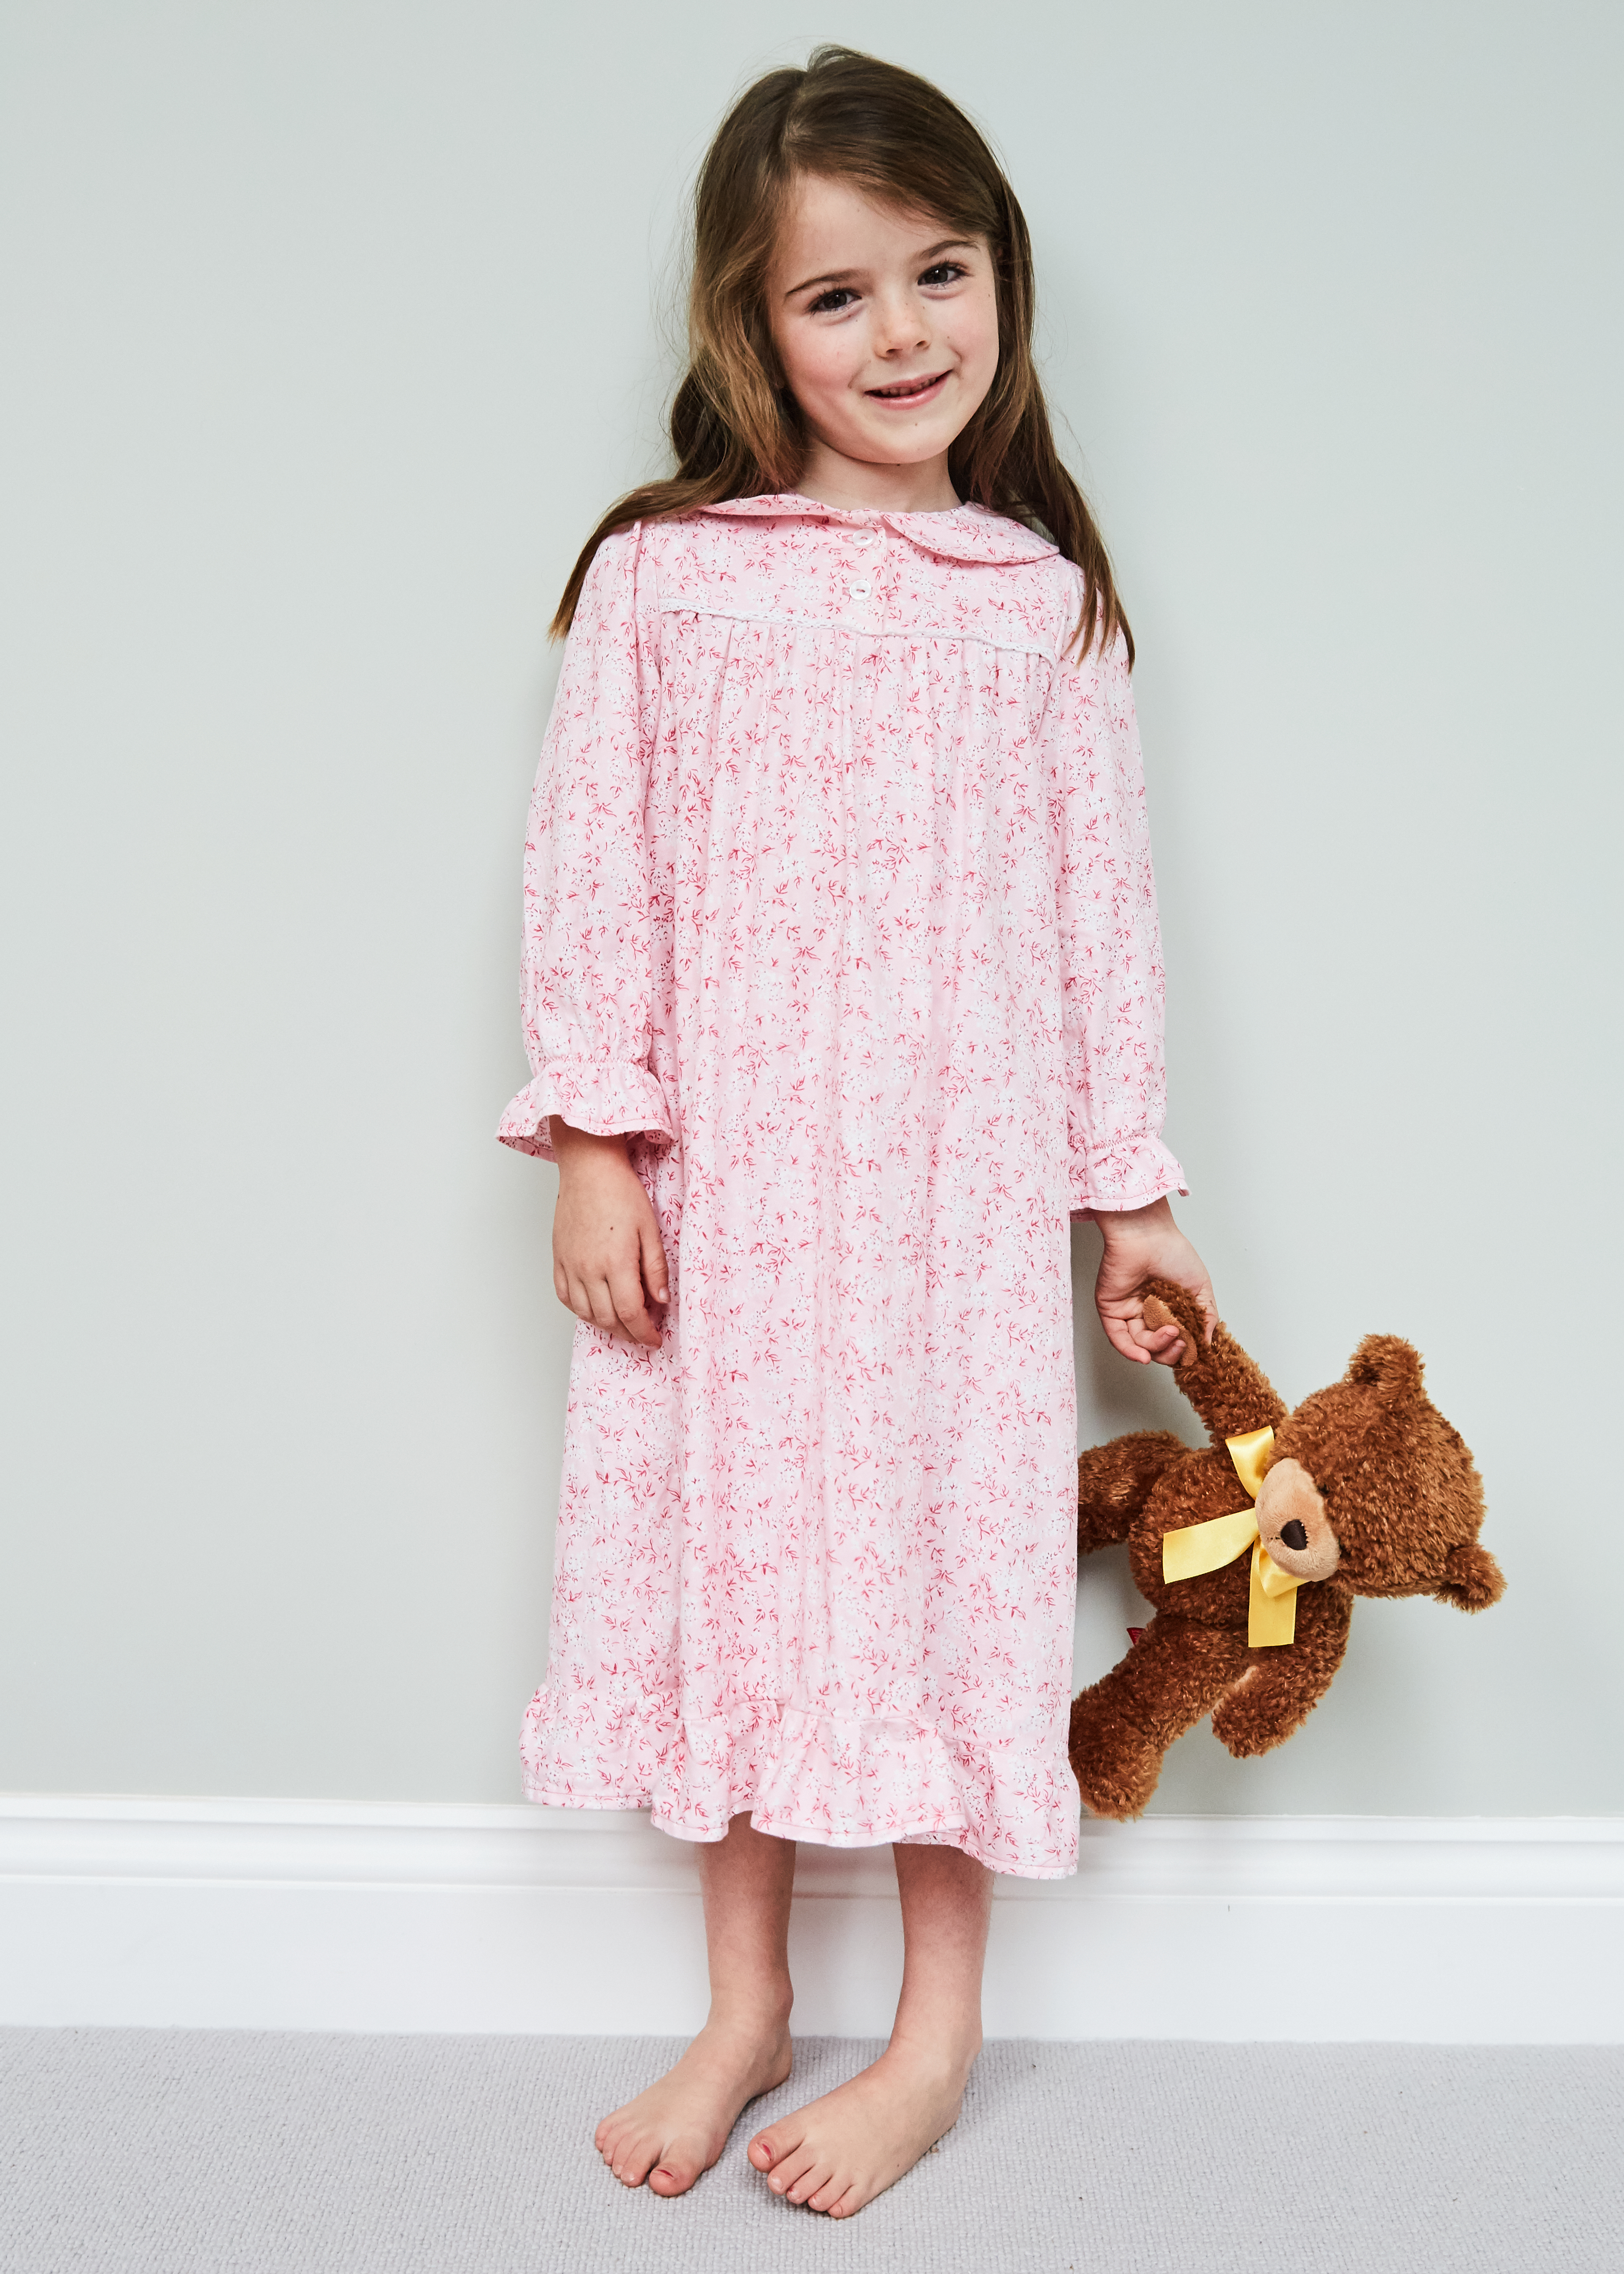 Ruffle nightie in vintage pink